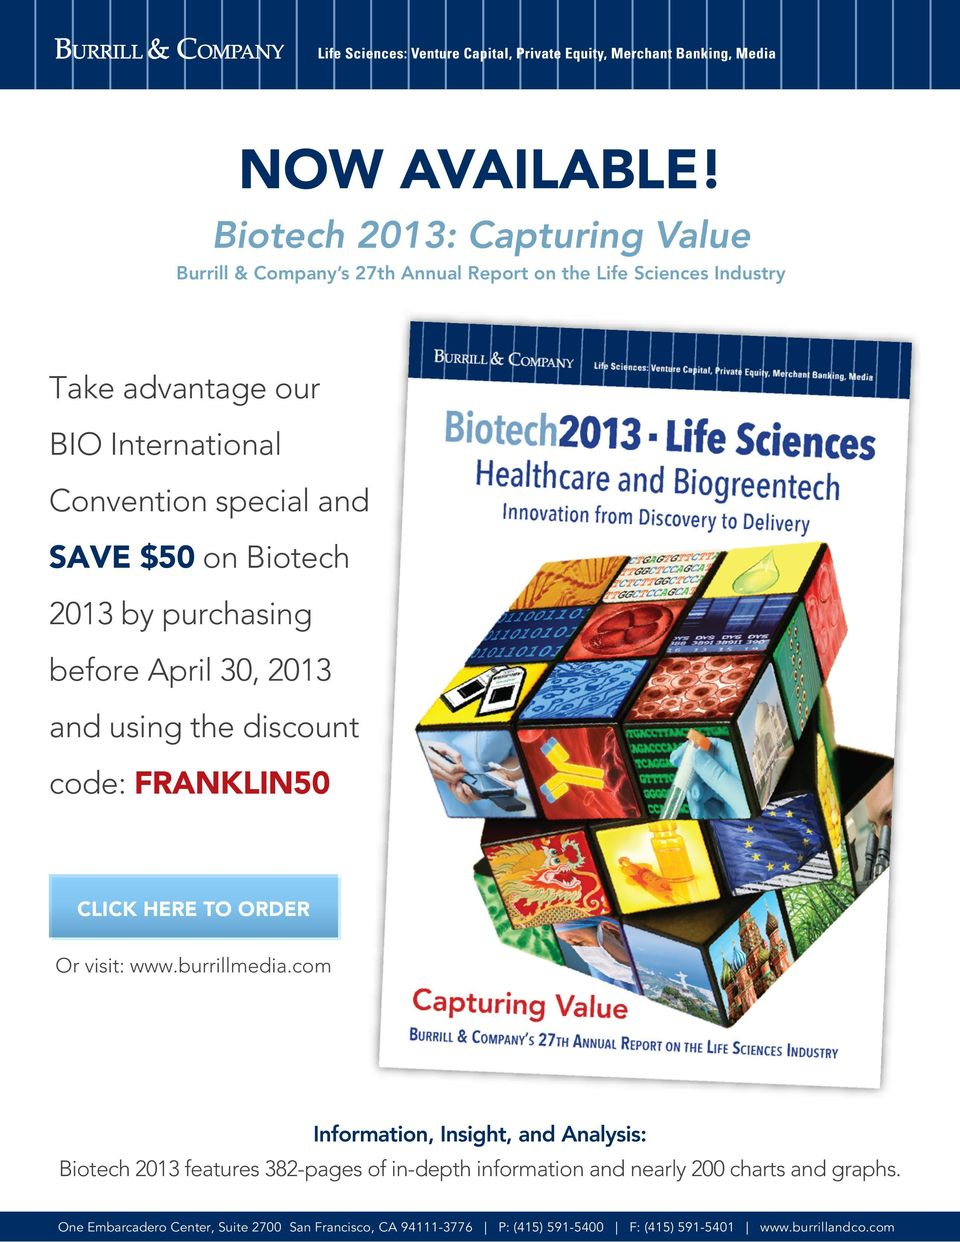 special ad SAVE $50 o Biotech 2013 by purchasig before April 30, 2013 ad usig the discout code: FRANKLIN50 CLICK HERE TO ORDER Or visit: